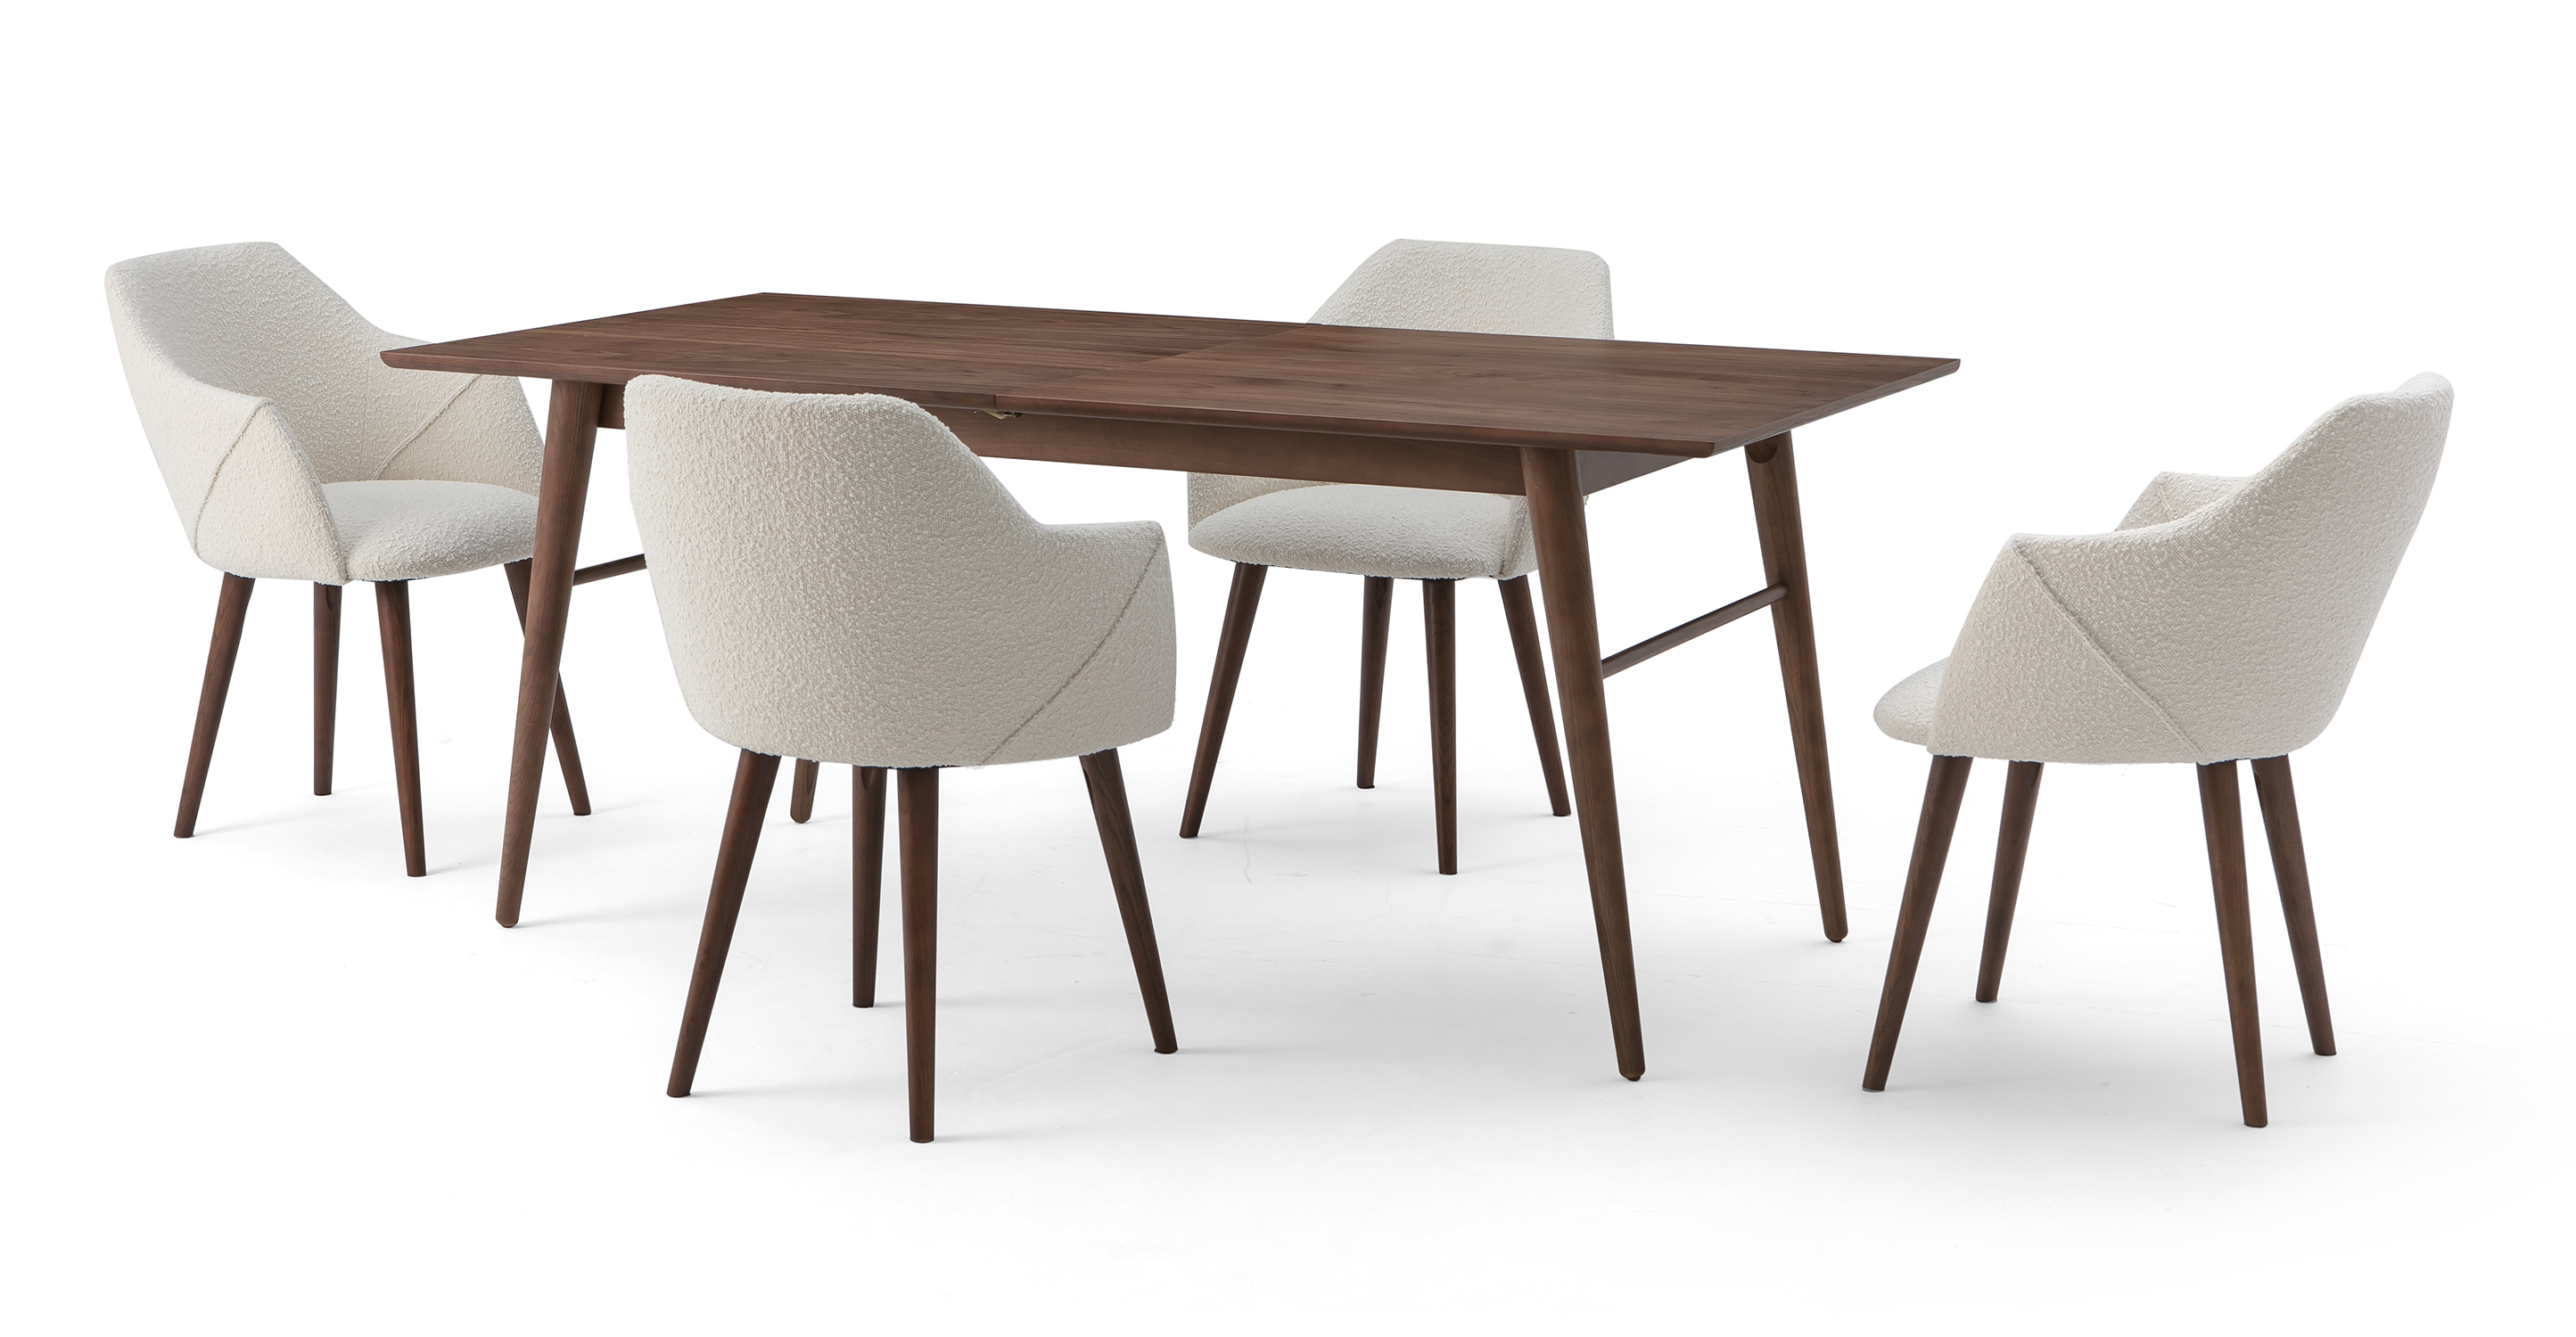 """Smiley 71-89"""" Extendable Dining Table (4) Berki Chairs, Walnut/Blanc Boucle"""